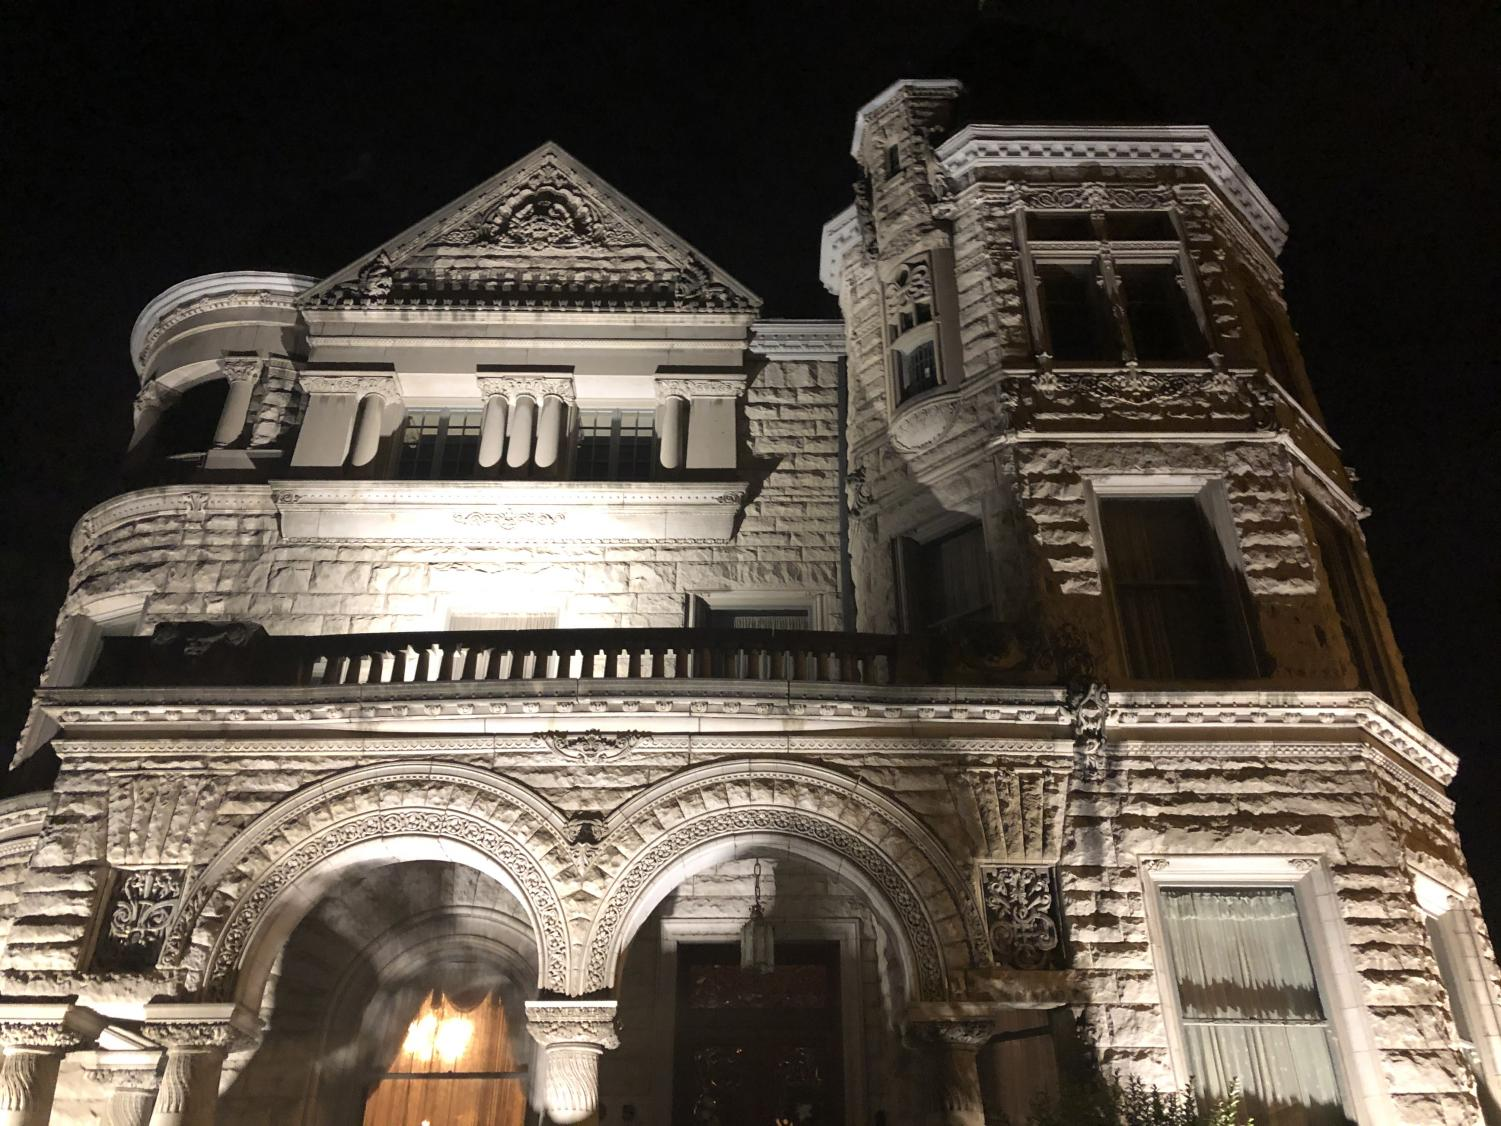 The Conrad-Caldwell House Museum is believed to be a deeply haunted place in Old Louisville. Photo by EP Presnell